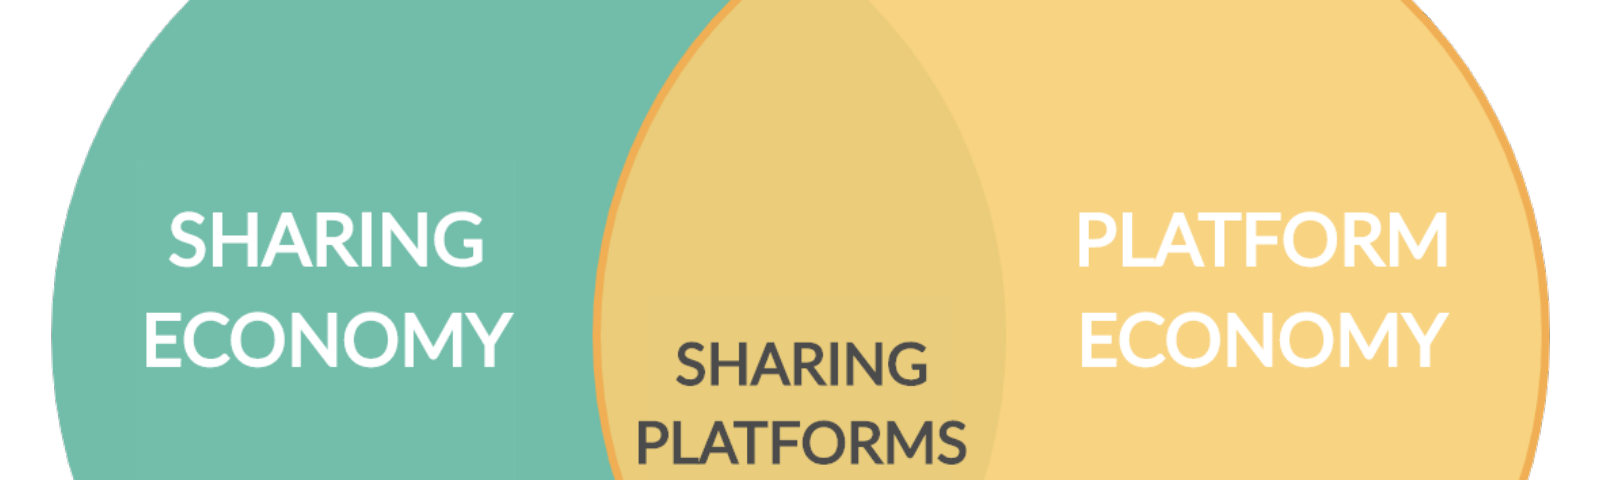 Sharing platforms are the 'sweet spot' between sharing economy and platform economy.